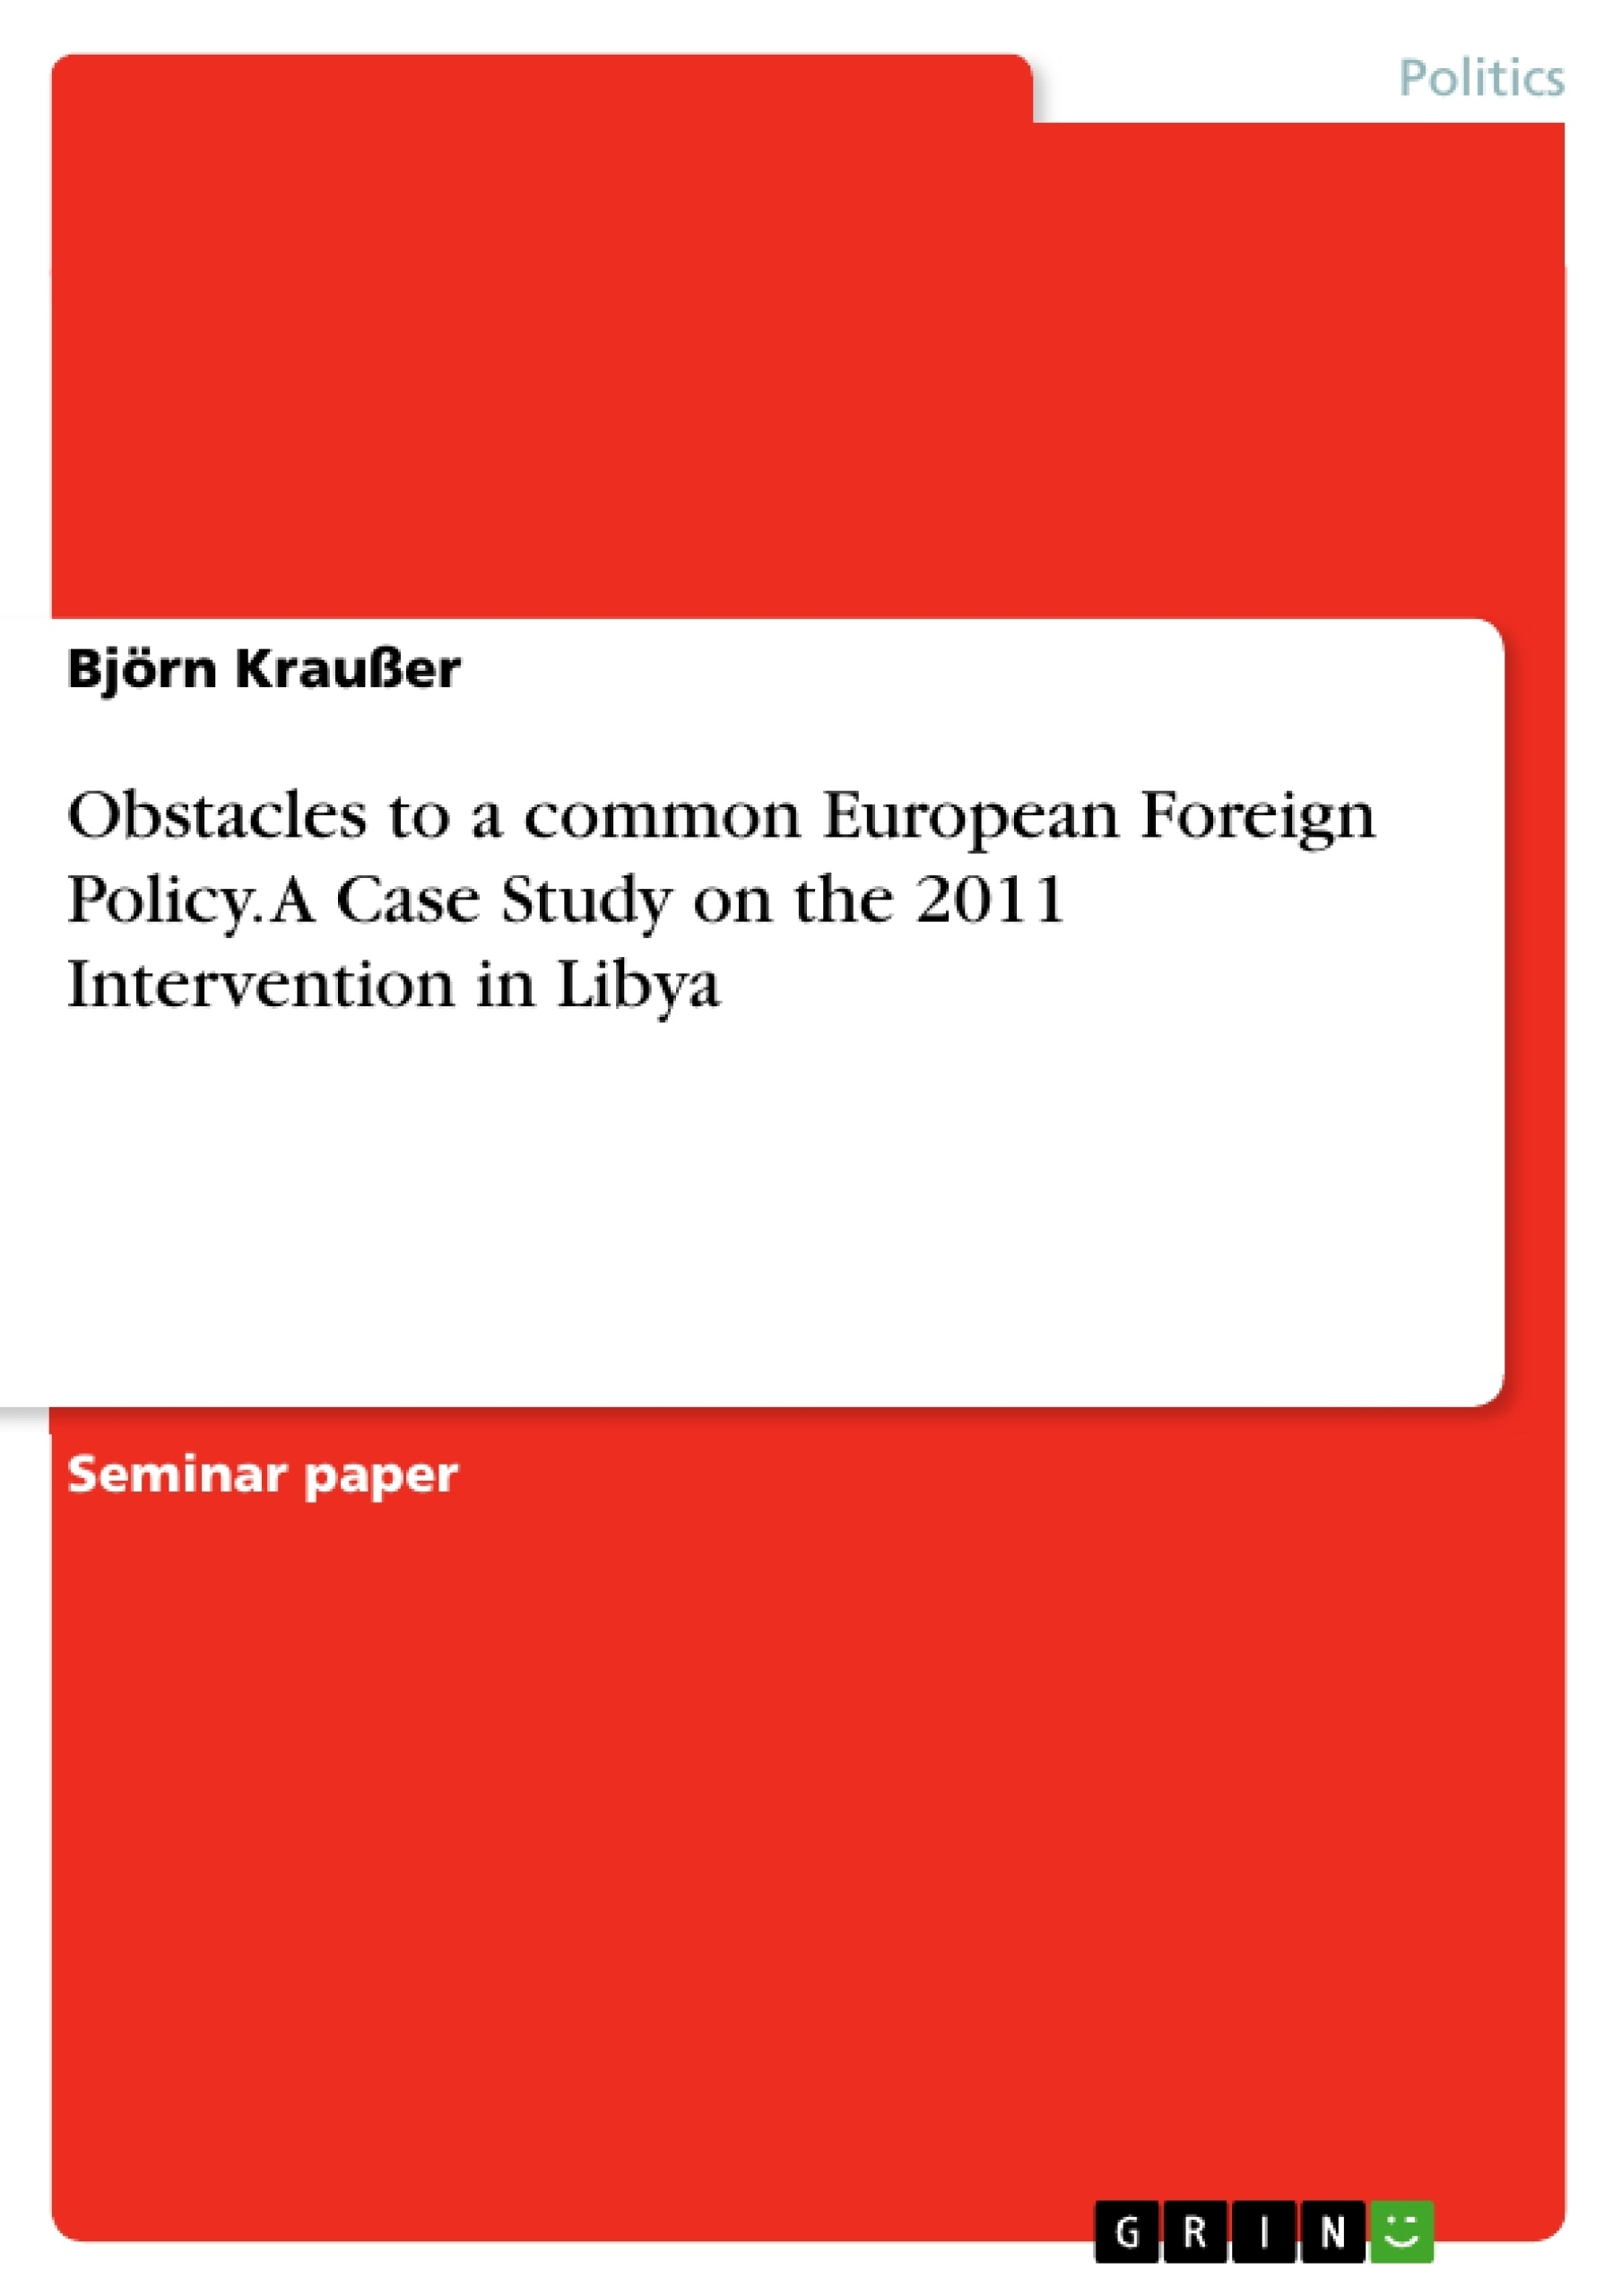 Title: Obstacles to a common European Foreign Policy. A Case Study on the  2011 Intervention in Libya